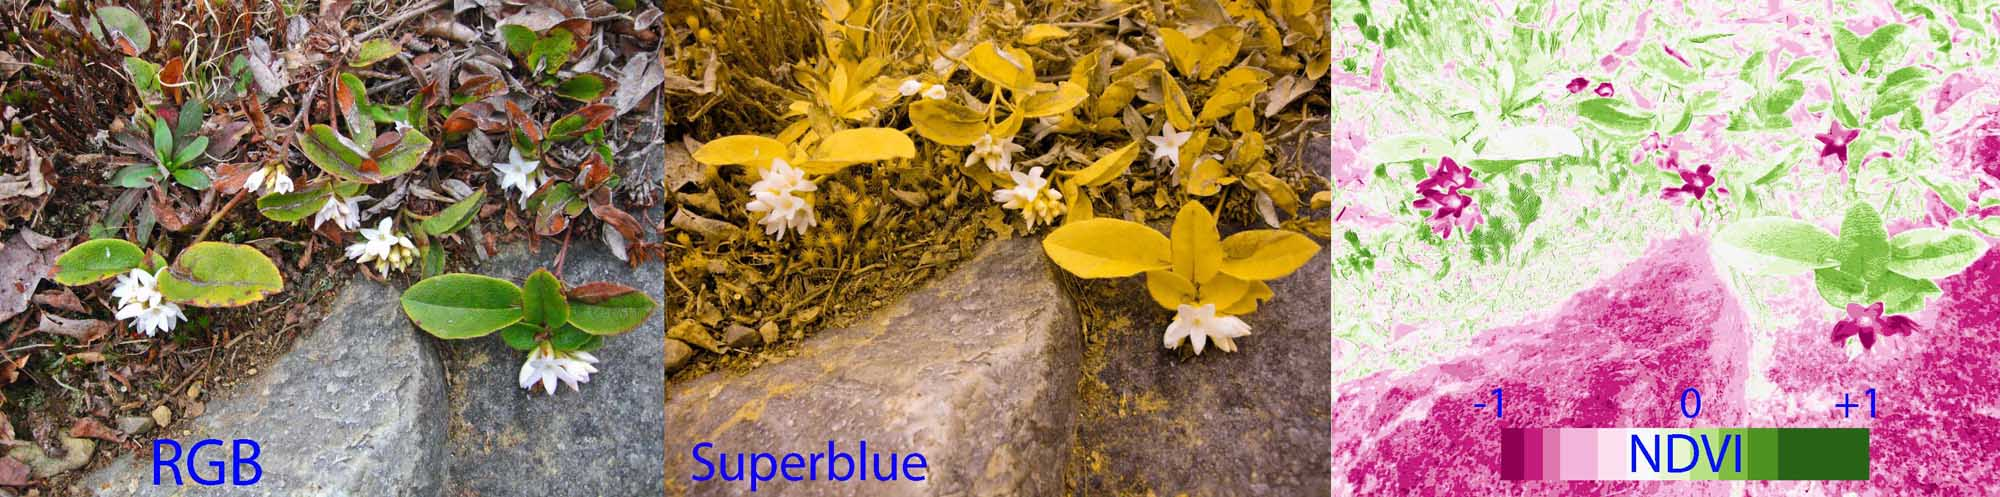 Photo: Normal color photo (RGB), superblue infrared photo (middle), and normalized difference vegetation index (NDVI) image of trailing arbutus. NDVI image was derived from two color channels in the single superblue photo which was taken with a camera modified with a special infrared filter. Healthy plants typically have NDVI values between 0.1 and 0.9. Note that flowers and rocks have very low NDVI values because they are not photosynthetic.